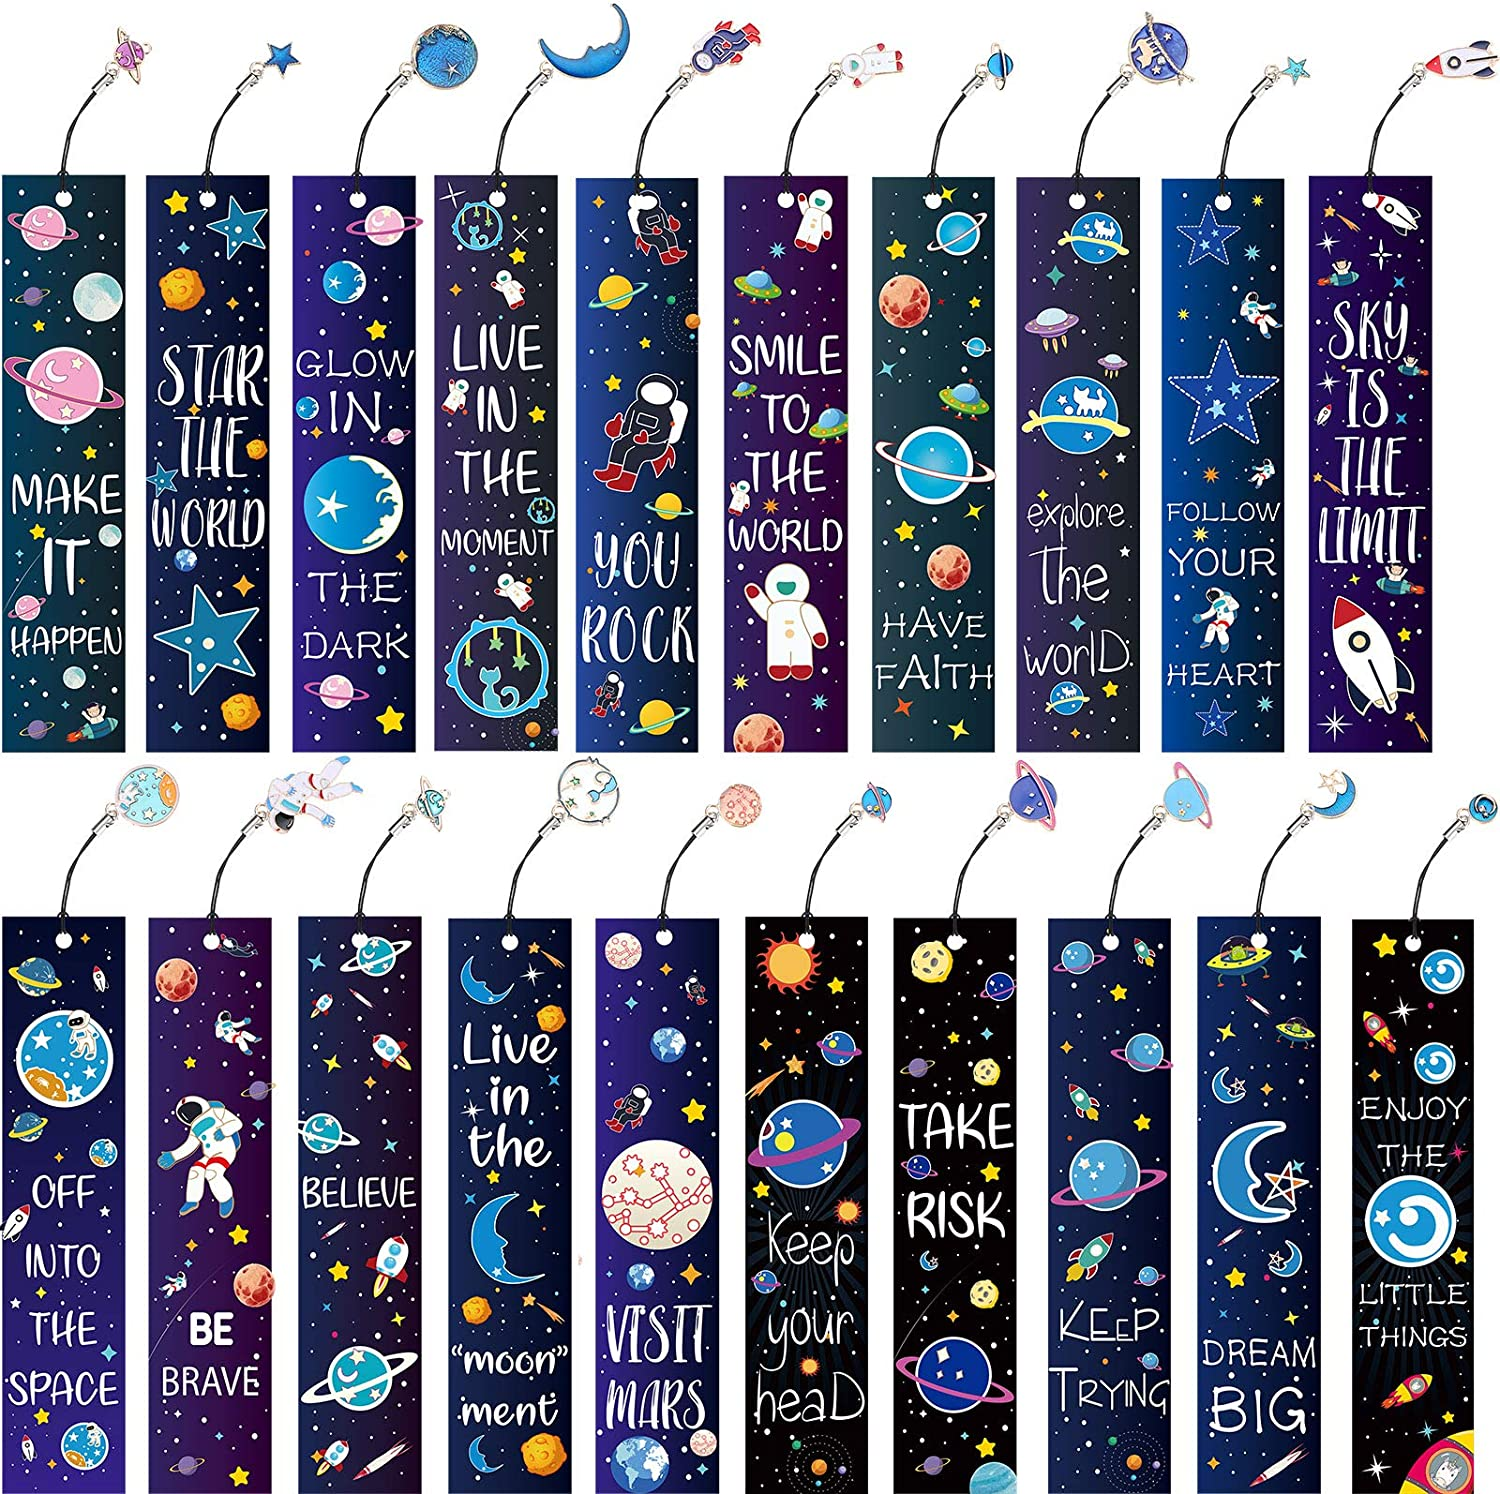 20 Pieces Space Theme Bookmarks Set, Inspirational Quotes Bookmark with Metal Charms Encouraging Bookmark School Prize Bookmark for Students Kids Adults Reading Present Party Favors